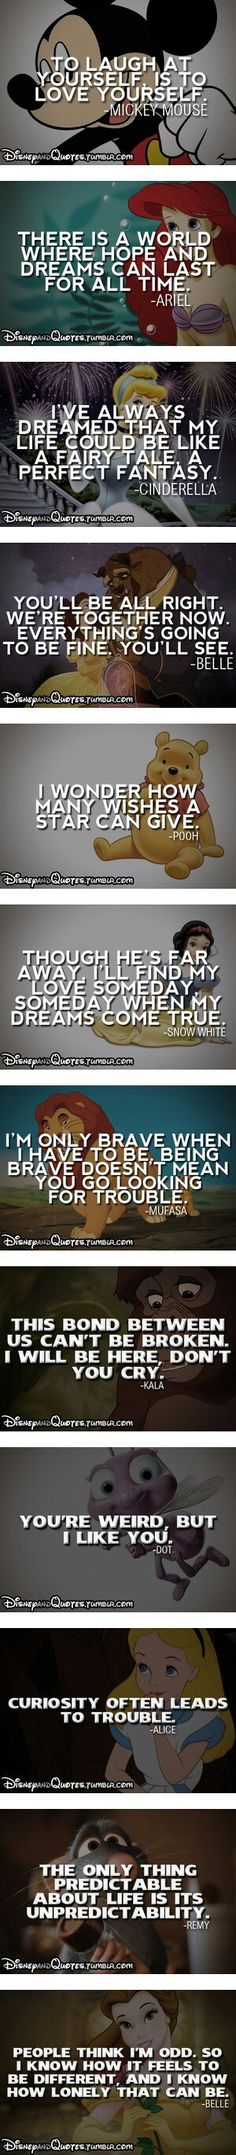 Disney sayings